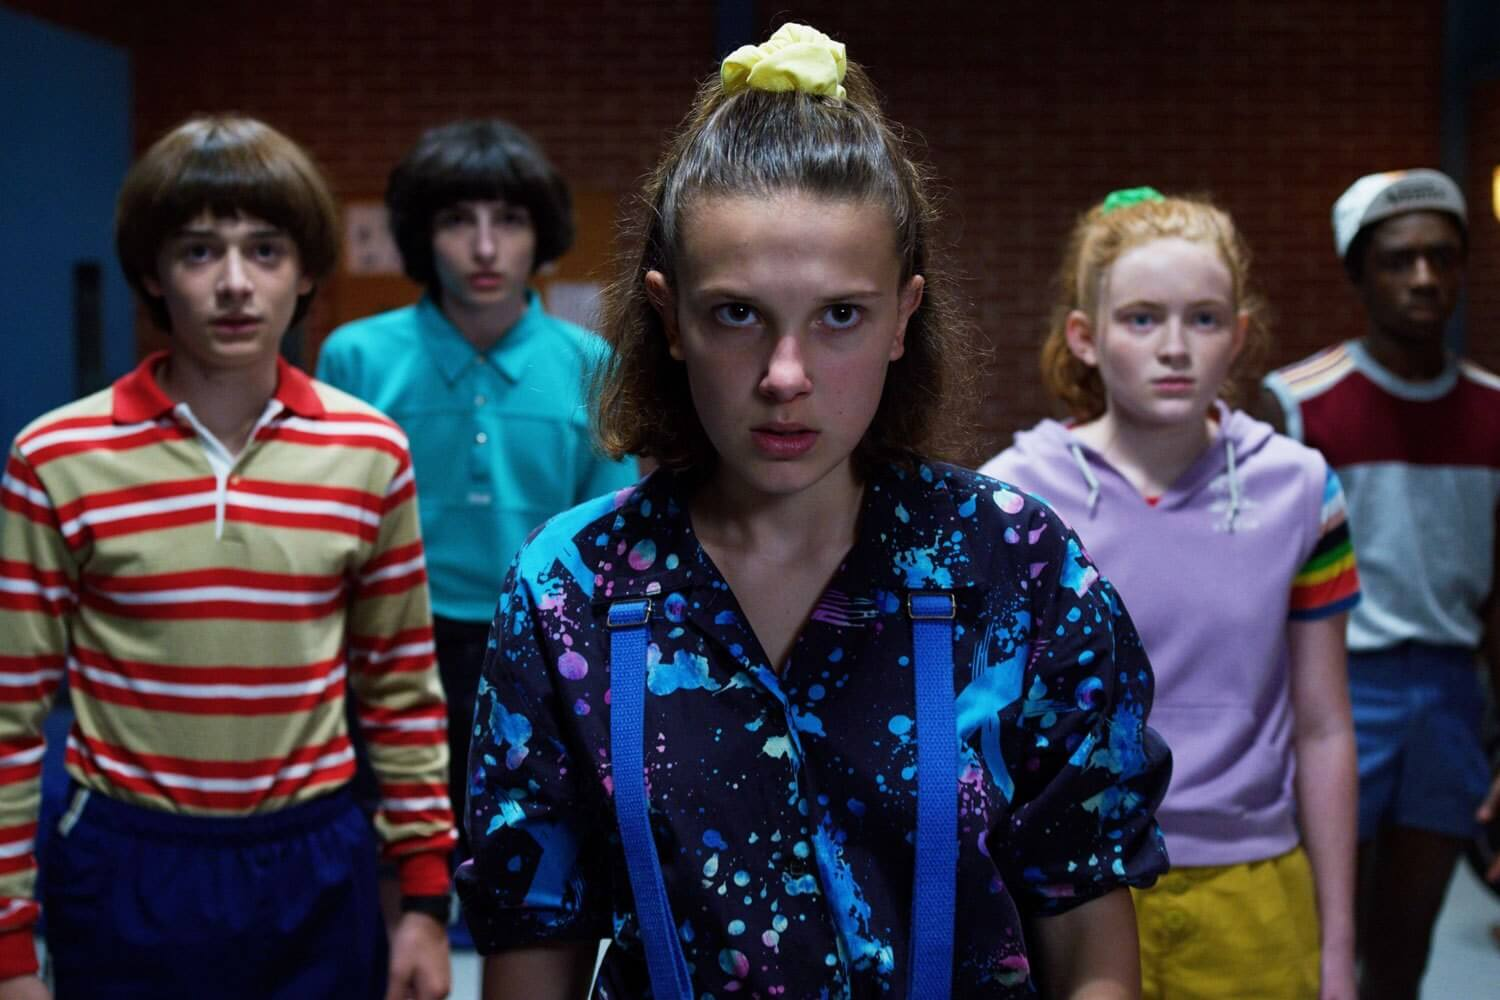 Stranger Things season 3 breaks Netflix records with 40million viewers